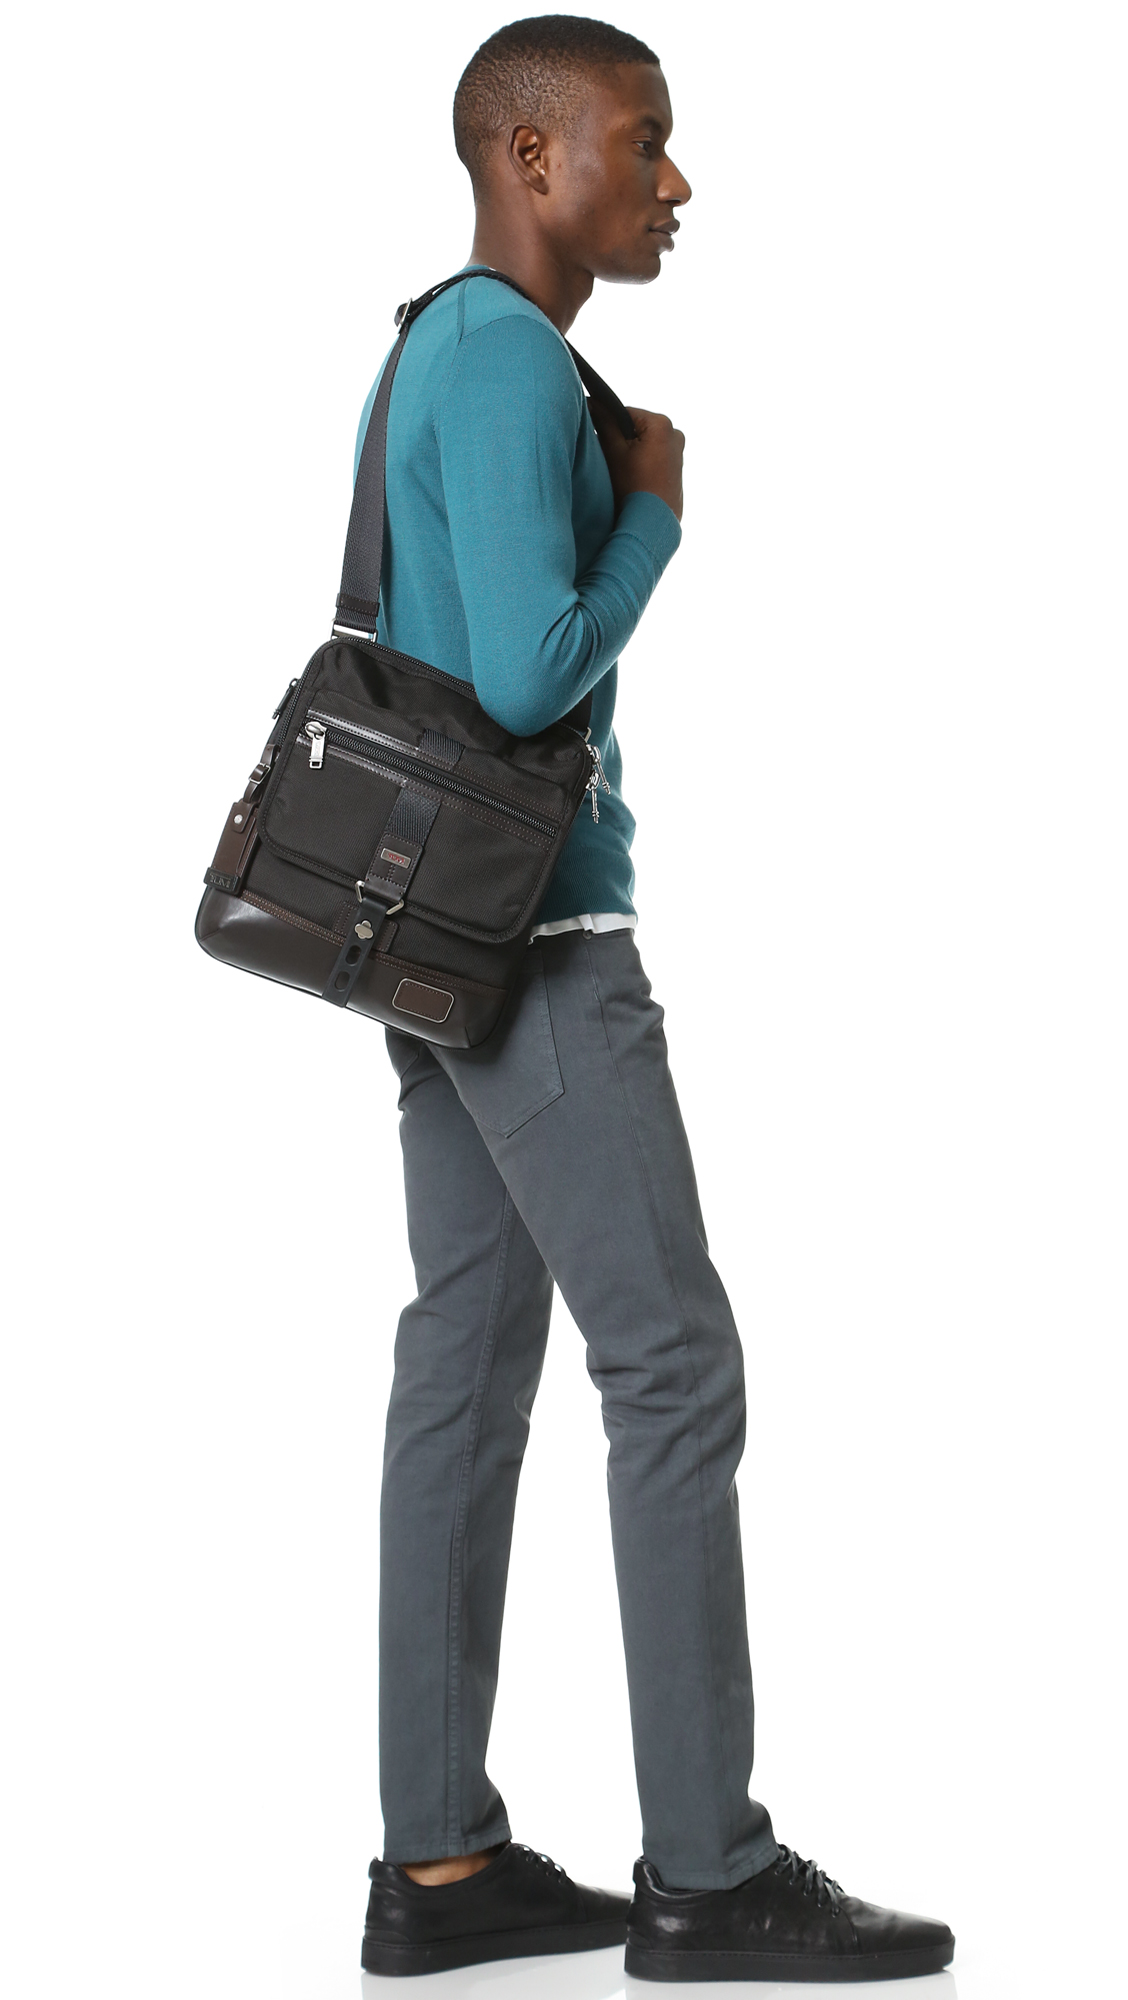 Elegant Tumi Alpha Bravo for Cool Travel Bag Ideas: Tumi Alpha Bravo Backpack | Tumi Macys | Tumi Alpha Bravo